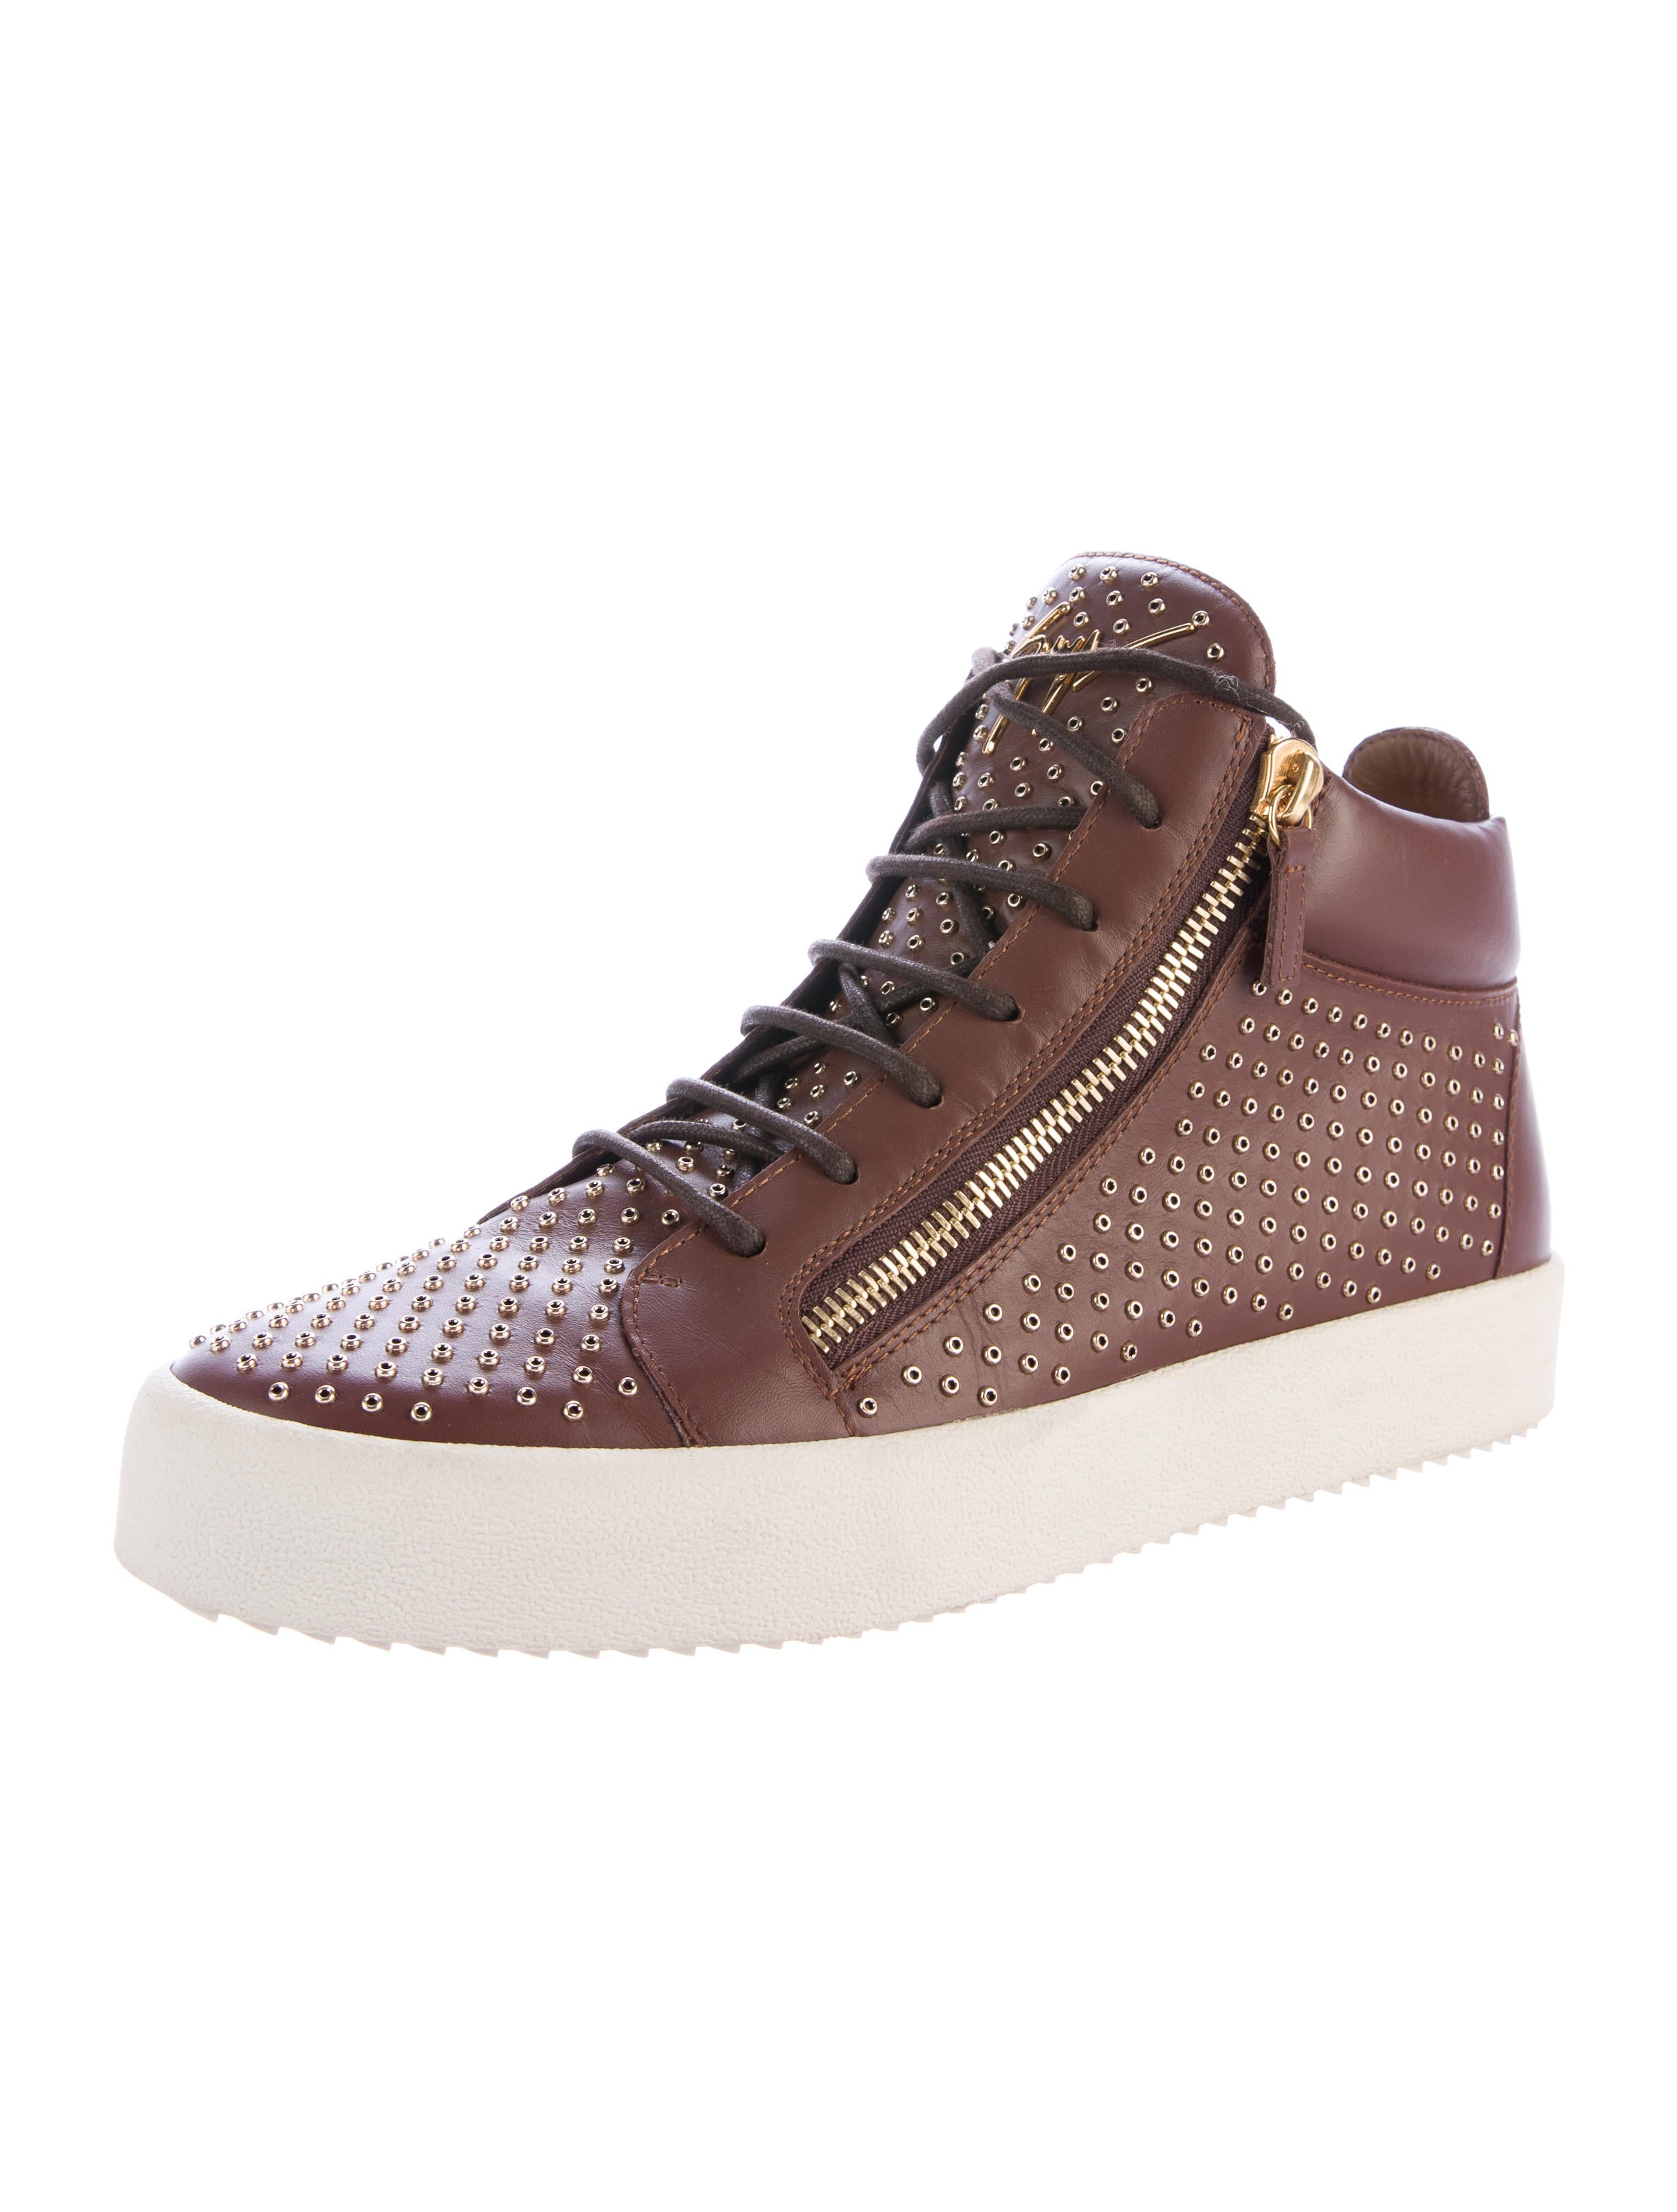 Men Shoes With Gold Hardware